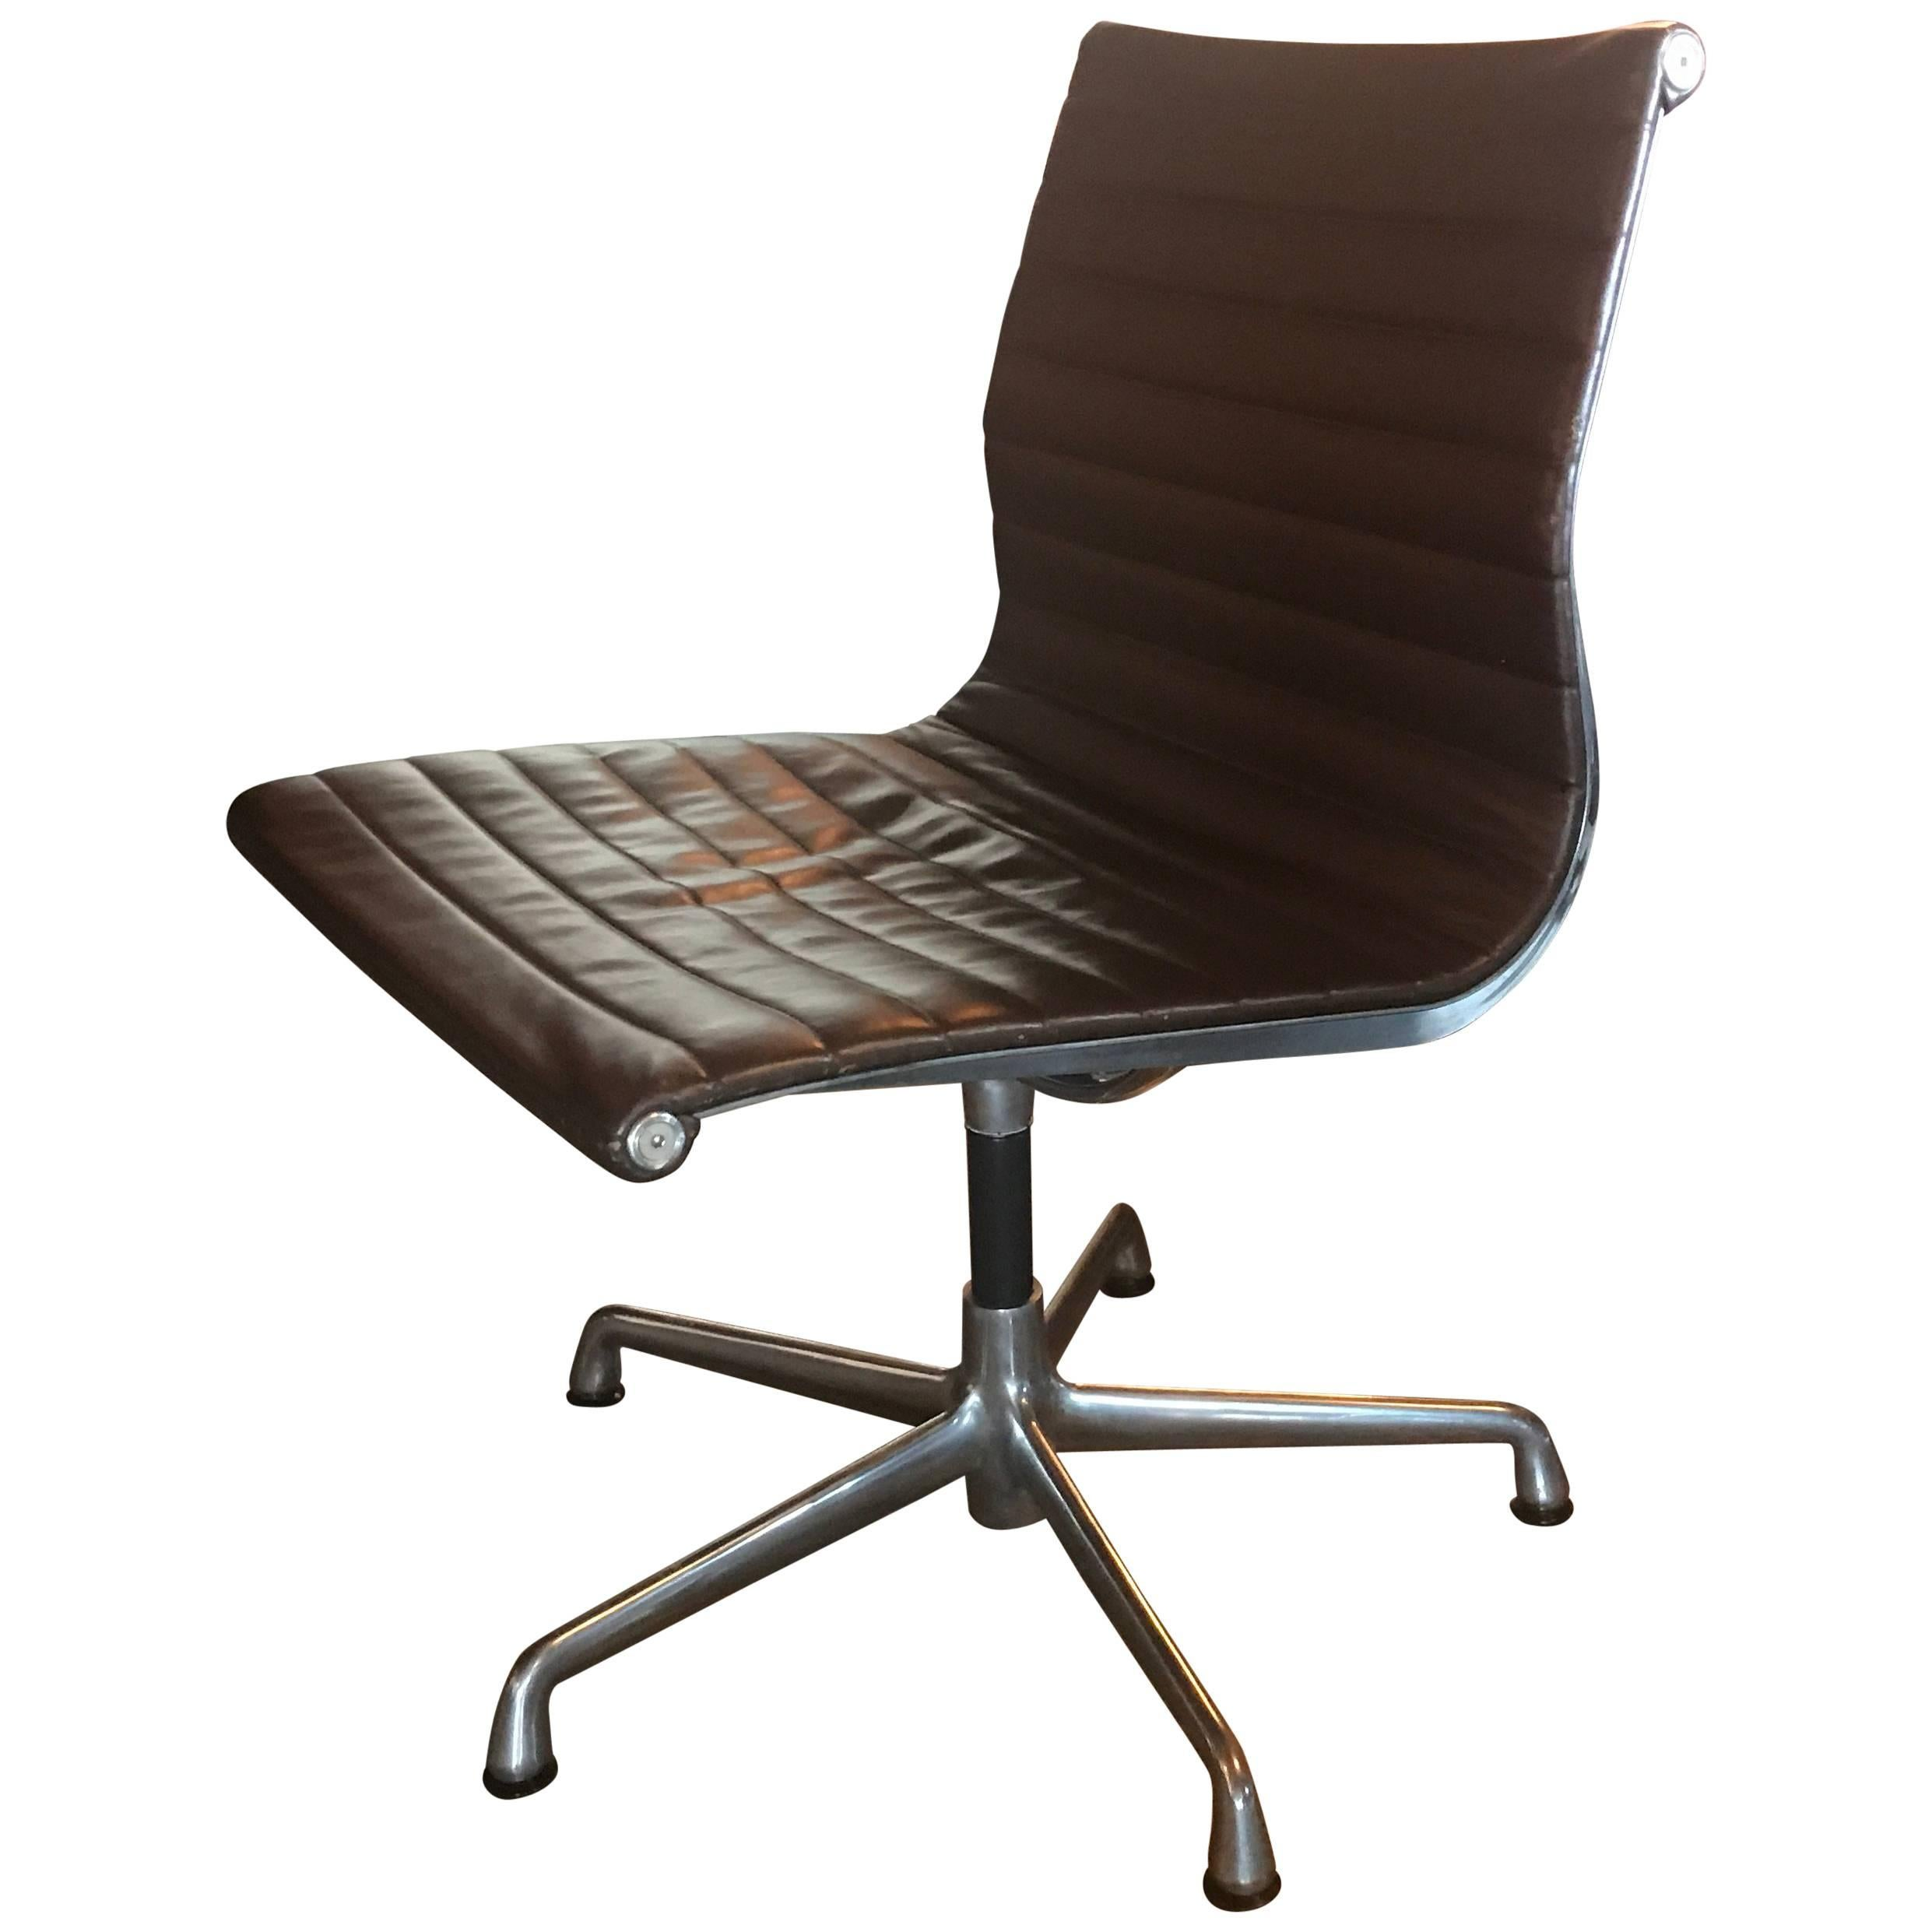 Eames Office Swivel Aluminum Group Leather Chair Herman Miller For Sale  sc 1 st  1stDibs & Eames Office Swivel Aluminum Group Leather Chair Herman Miller For ...